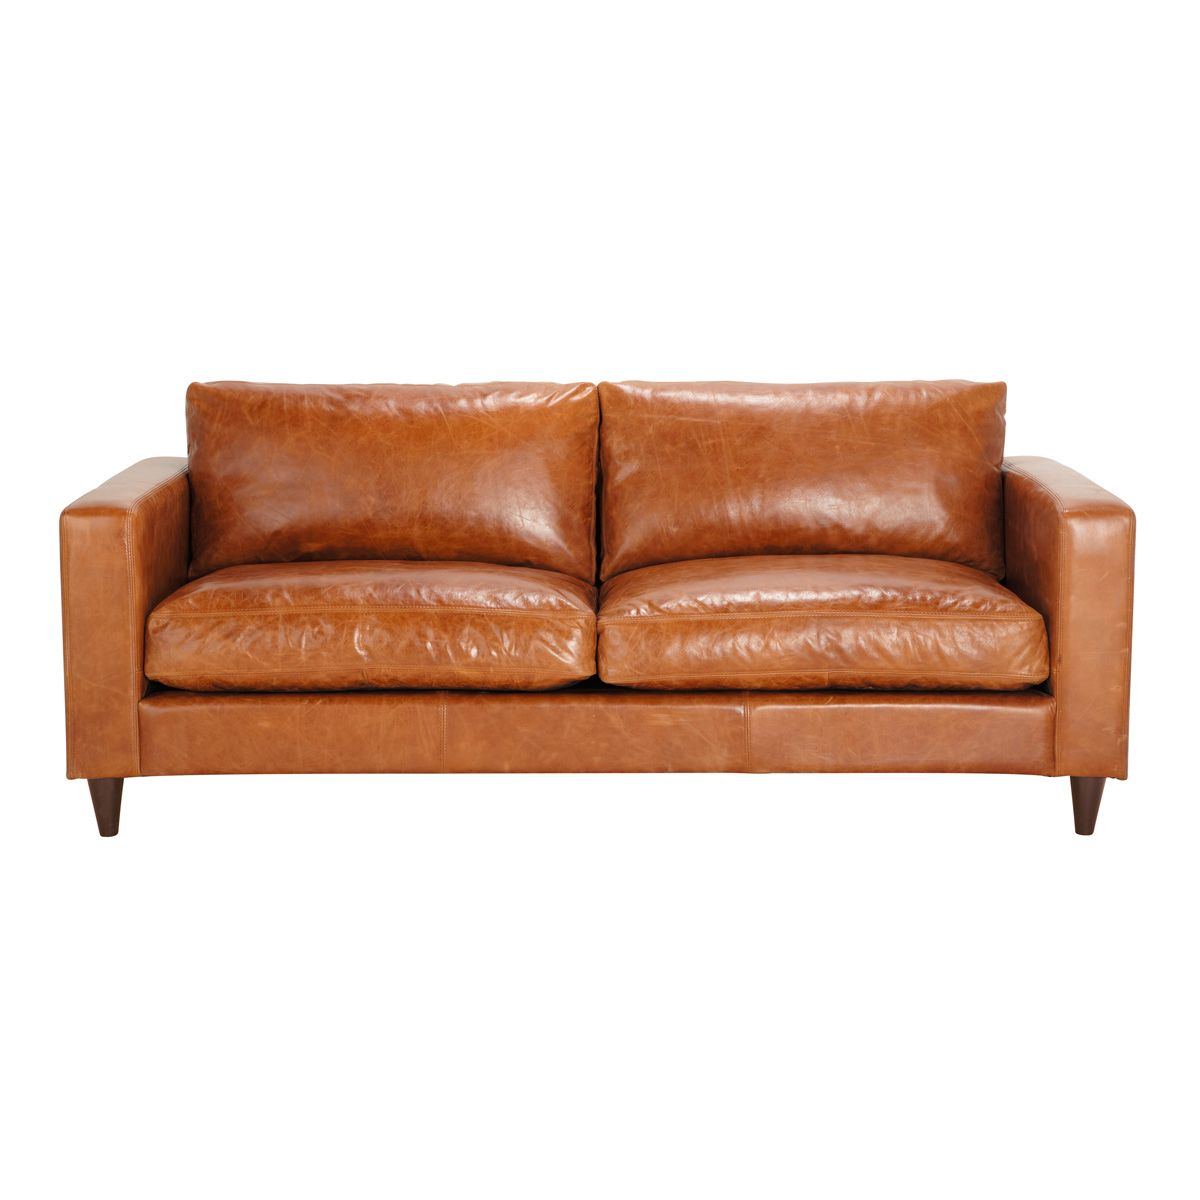 Canapé Cuir Marron Convertible Pin On Furniture